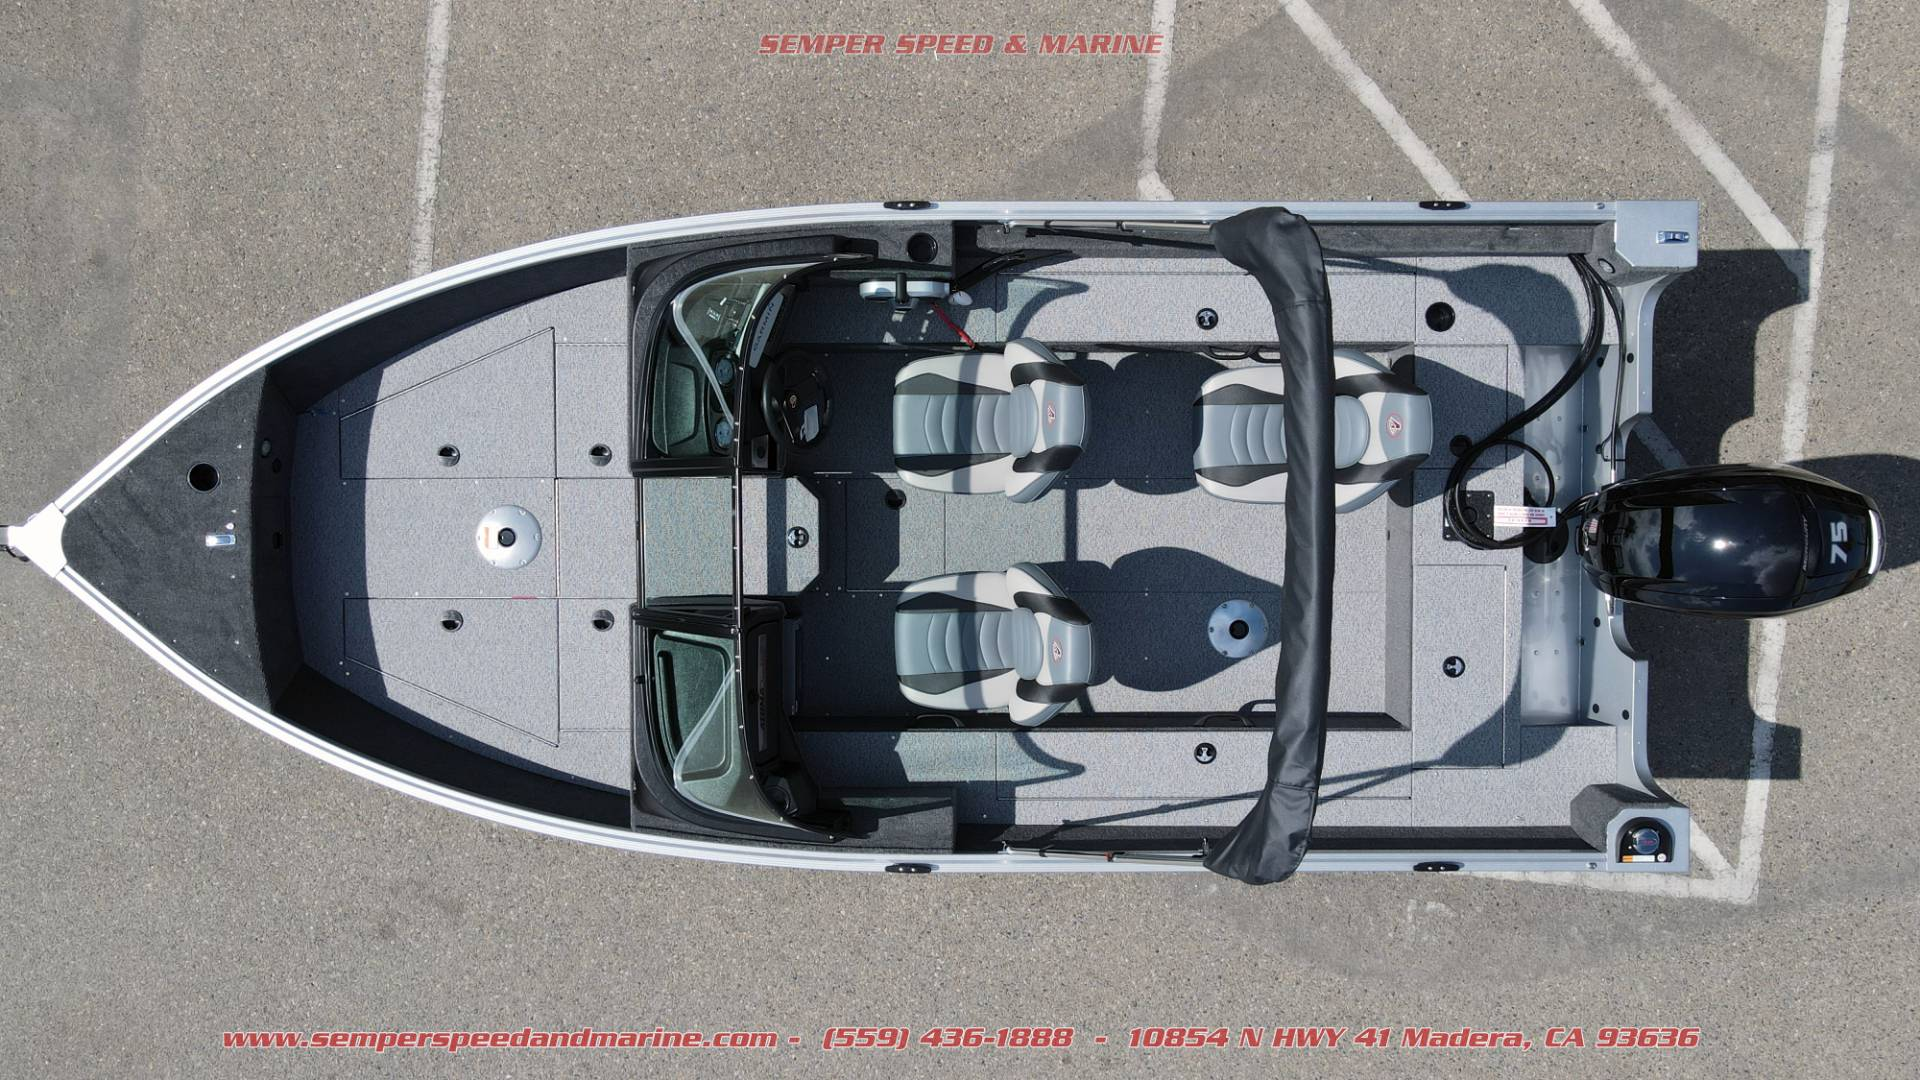 2021 Alumacraft Voyageur 175 Sport in Madera, California - Photo 5